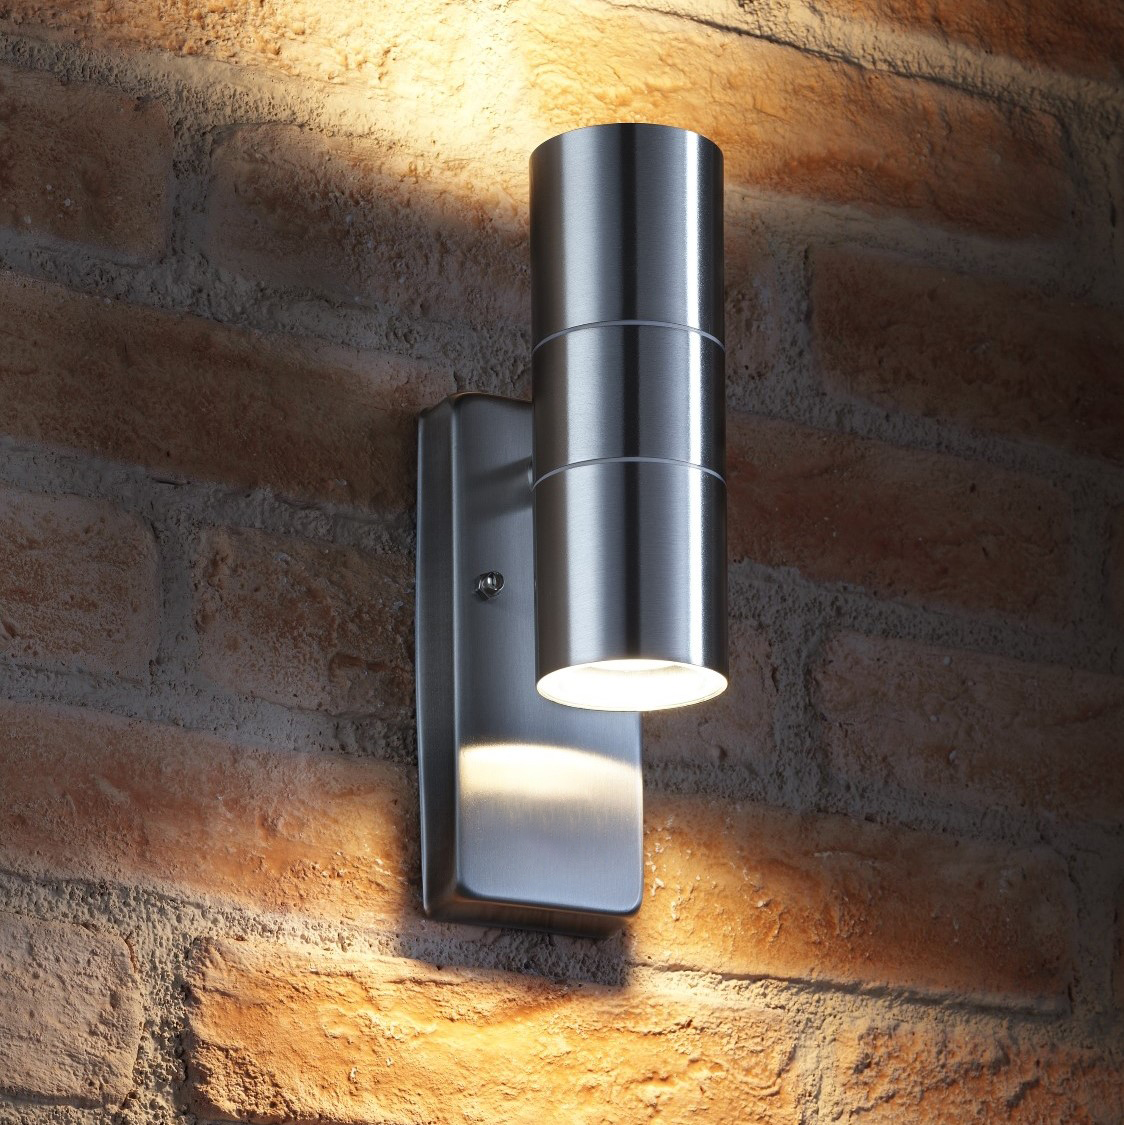 auraglow dusk till dawn sensor up down outdoor wall light avebury stainless steel. Black Bedroom Furniture Sets. Home Design Ideas